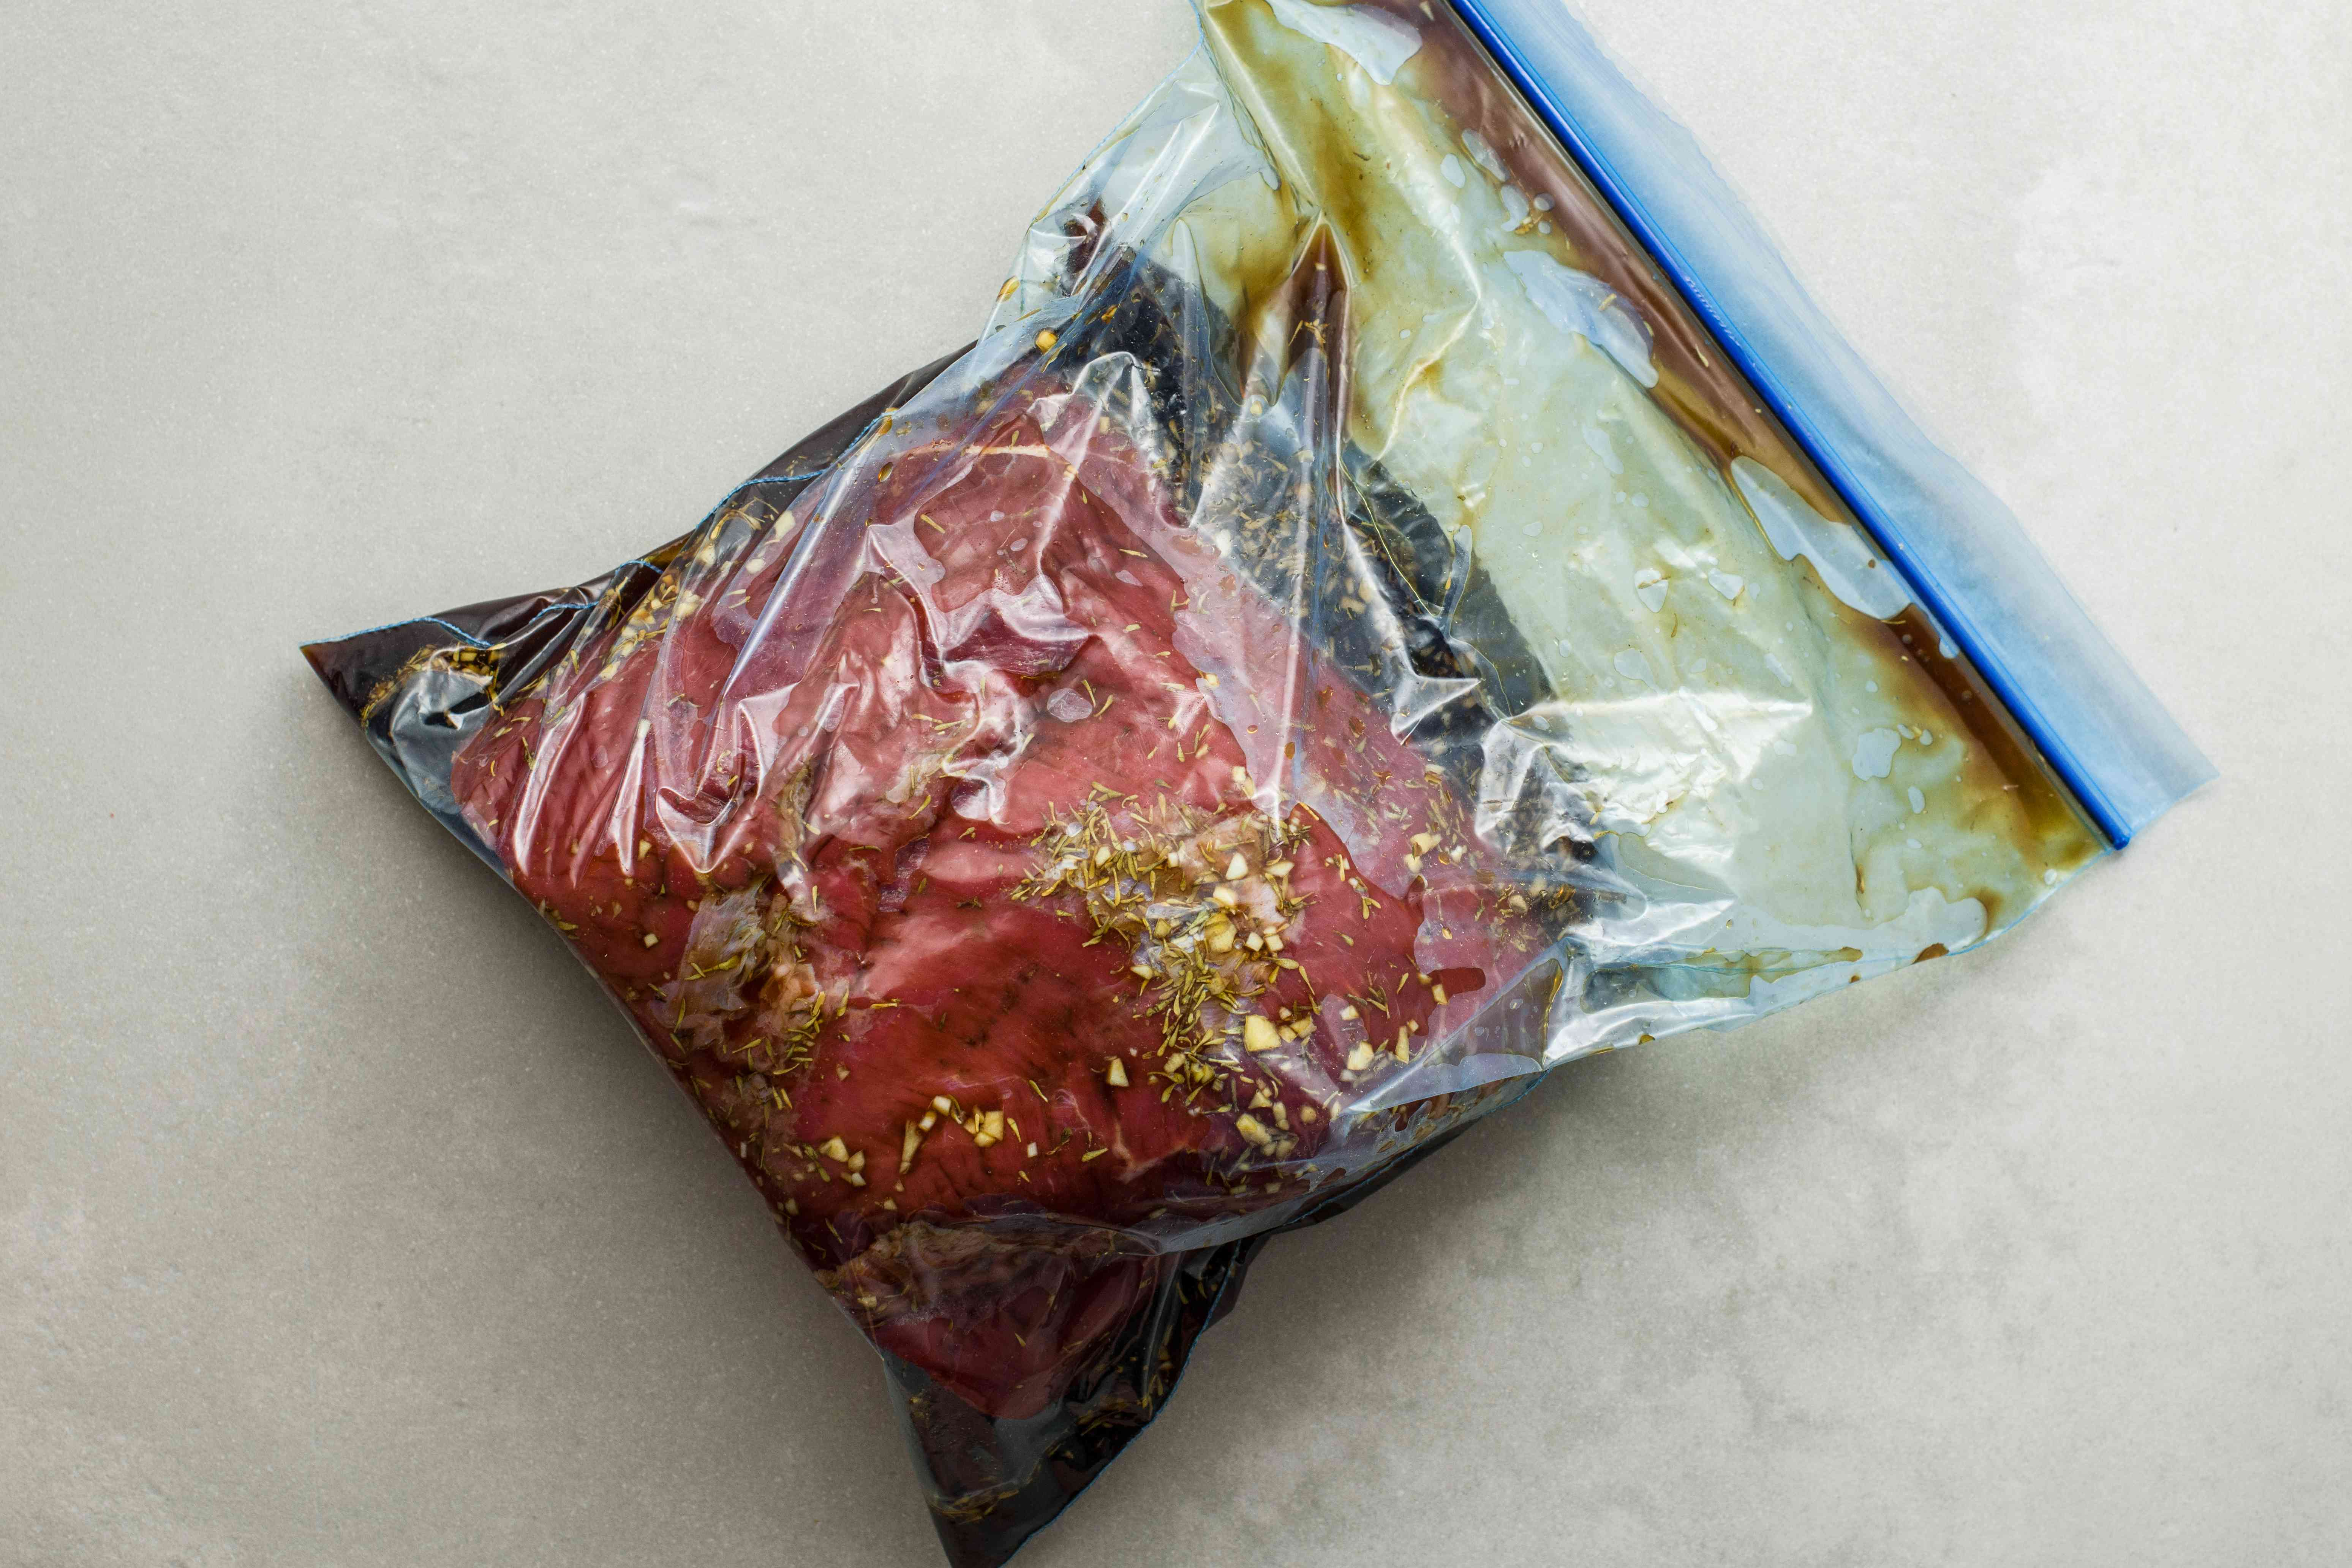 Roast in bag with marinade